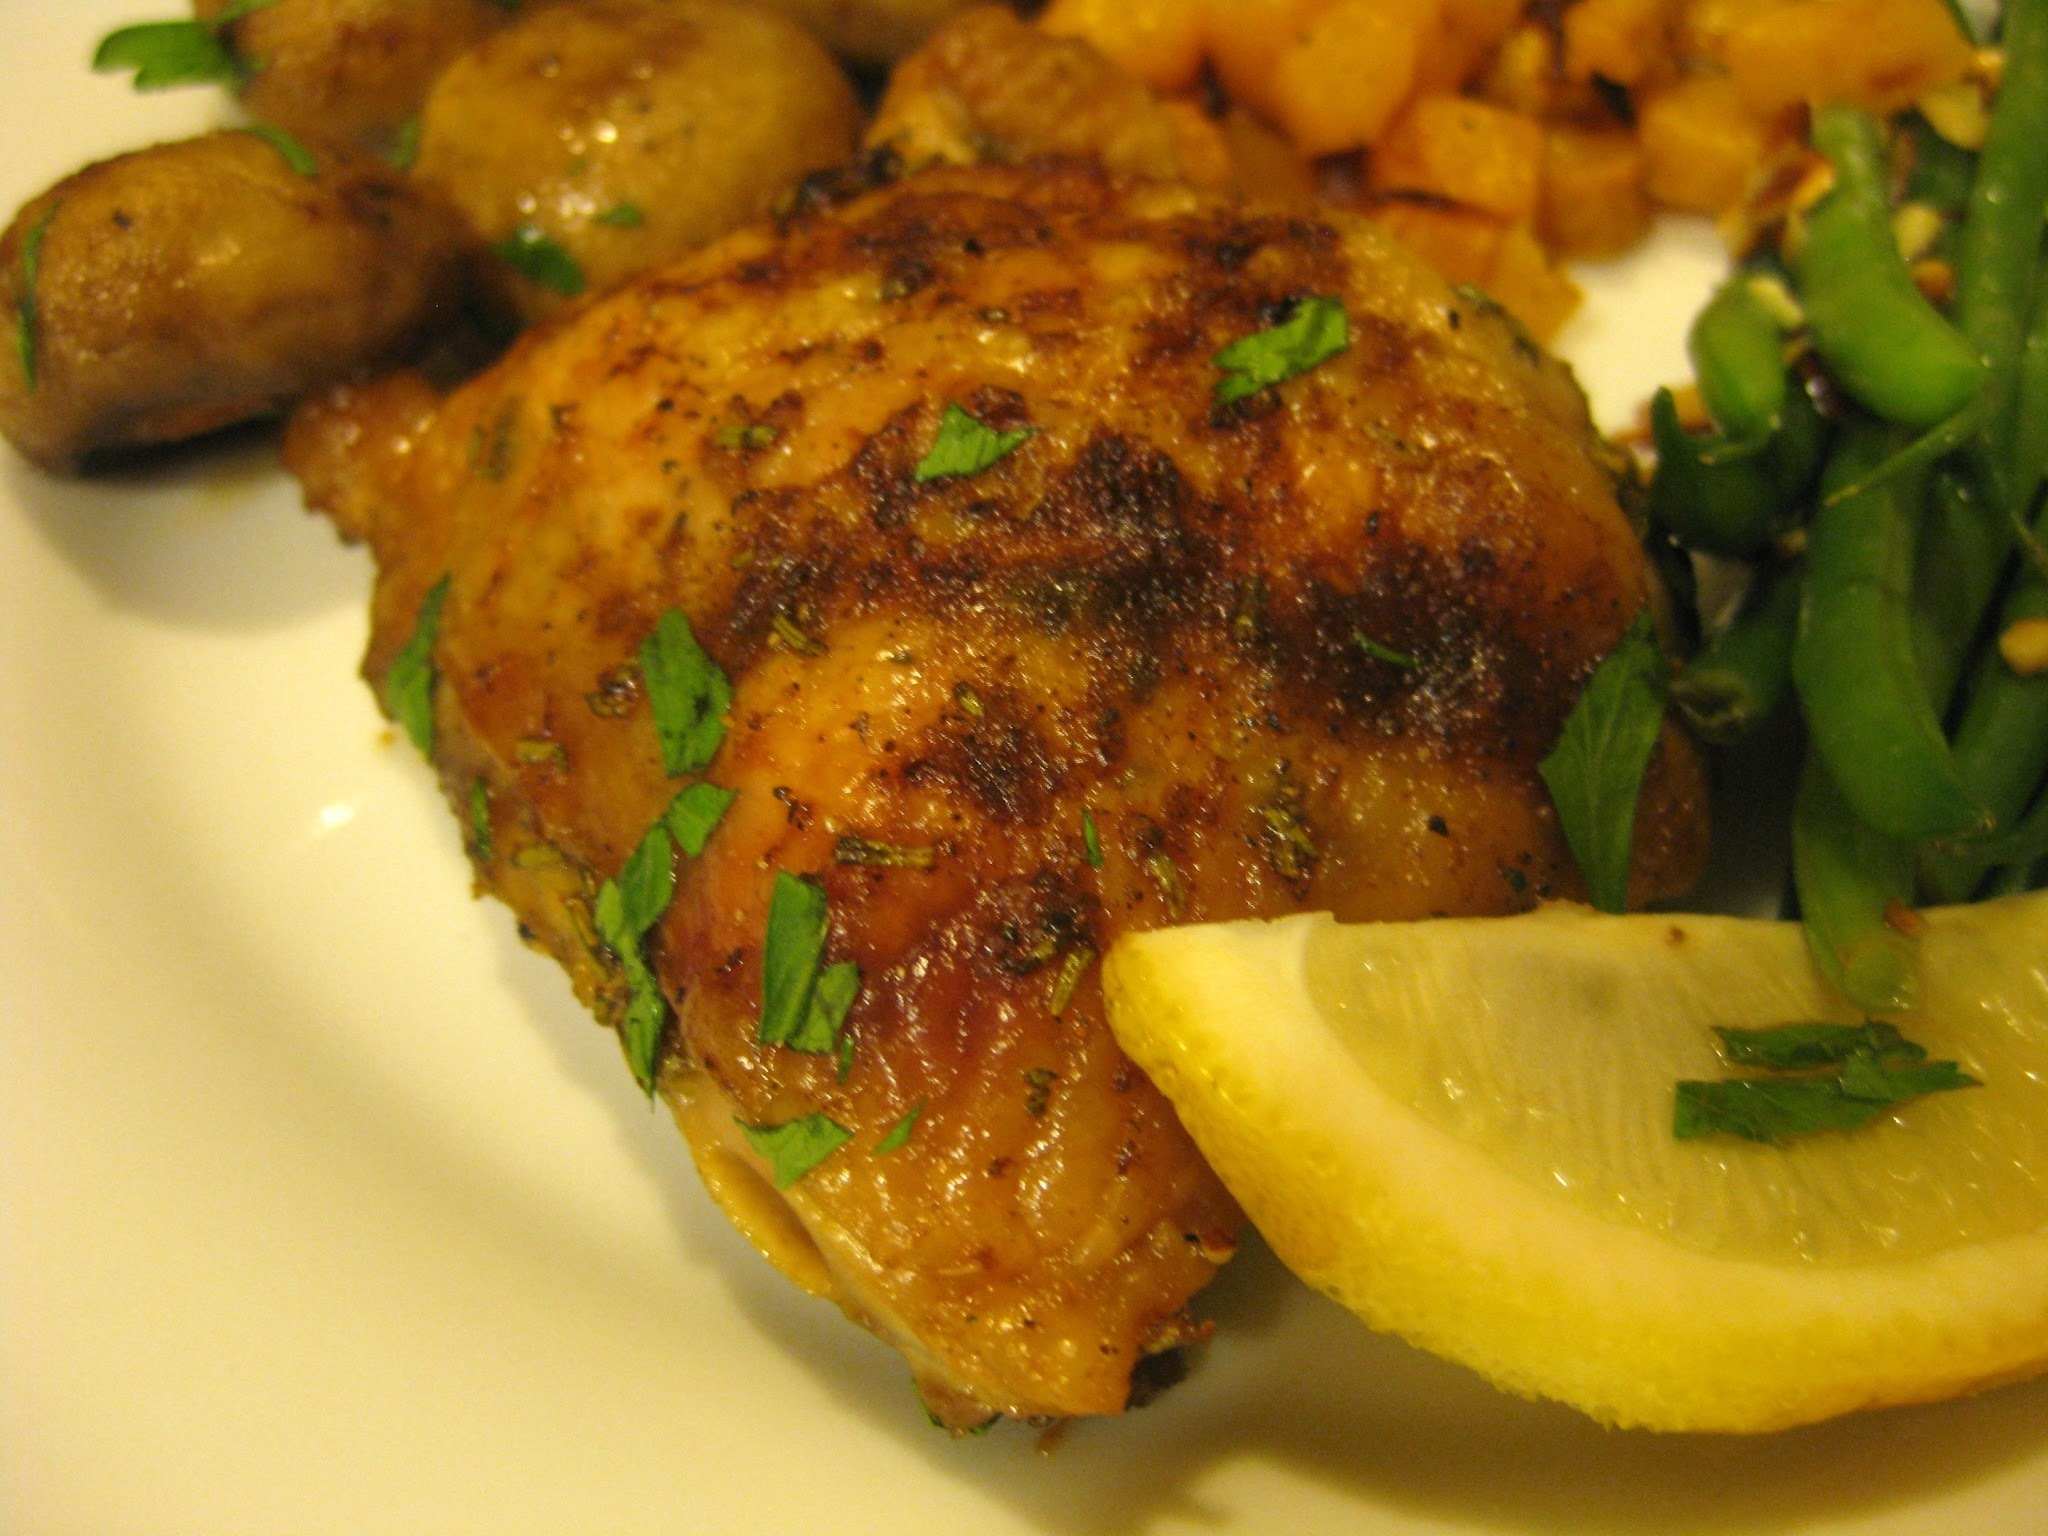 Roasted Chicken and Mushrooms with Rosemary and Lemon